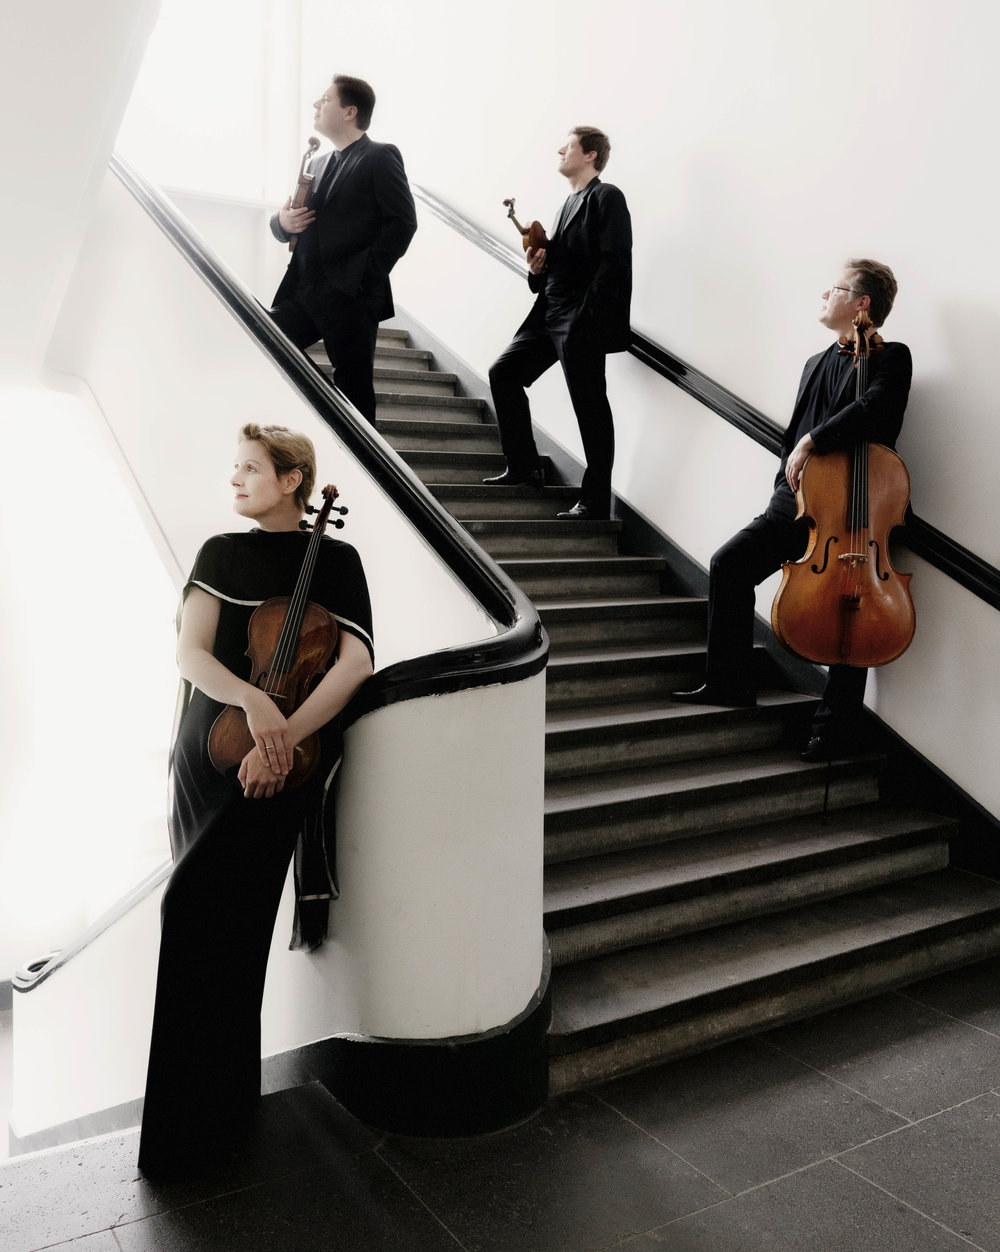 Henschel Quartett standing on stairs.jpg